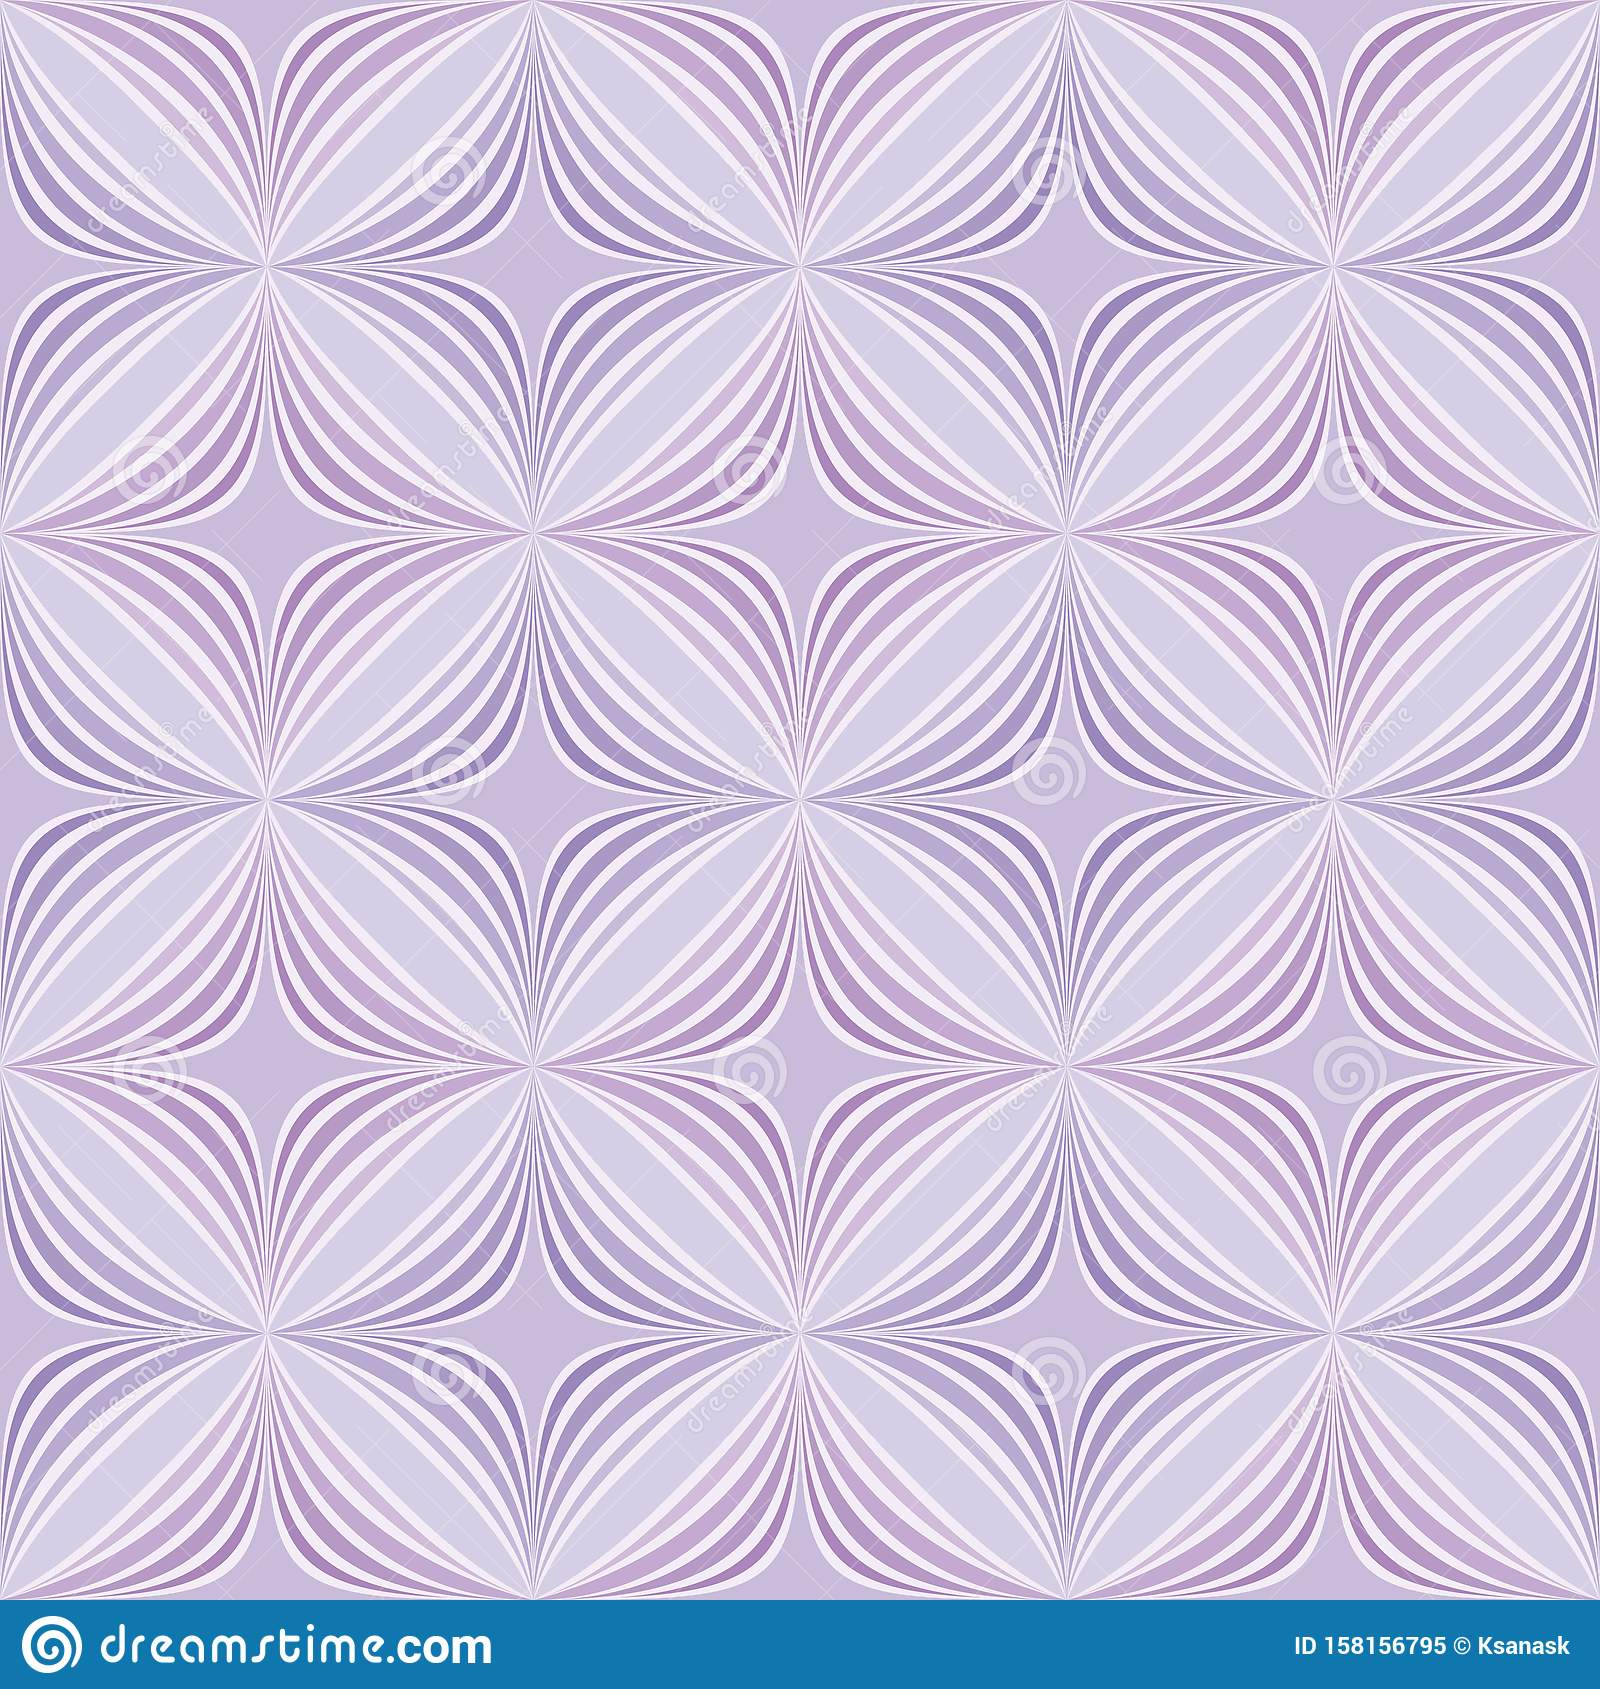 Light violet abstract seamless pattern.